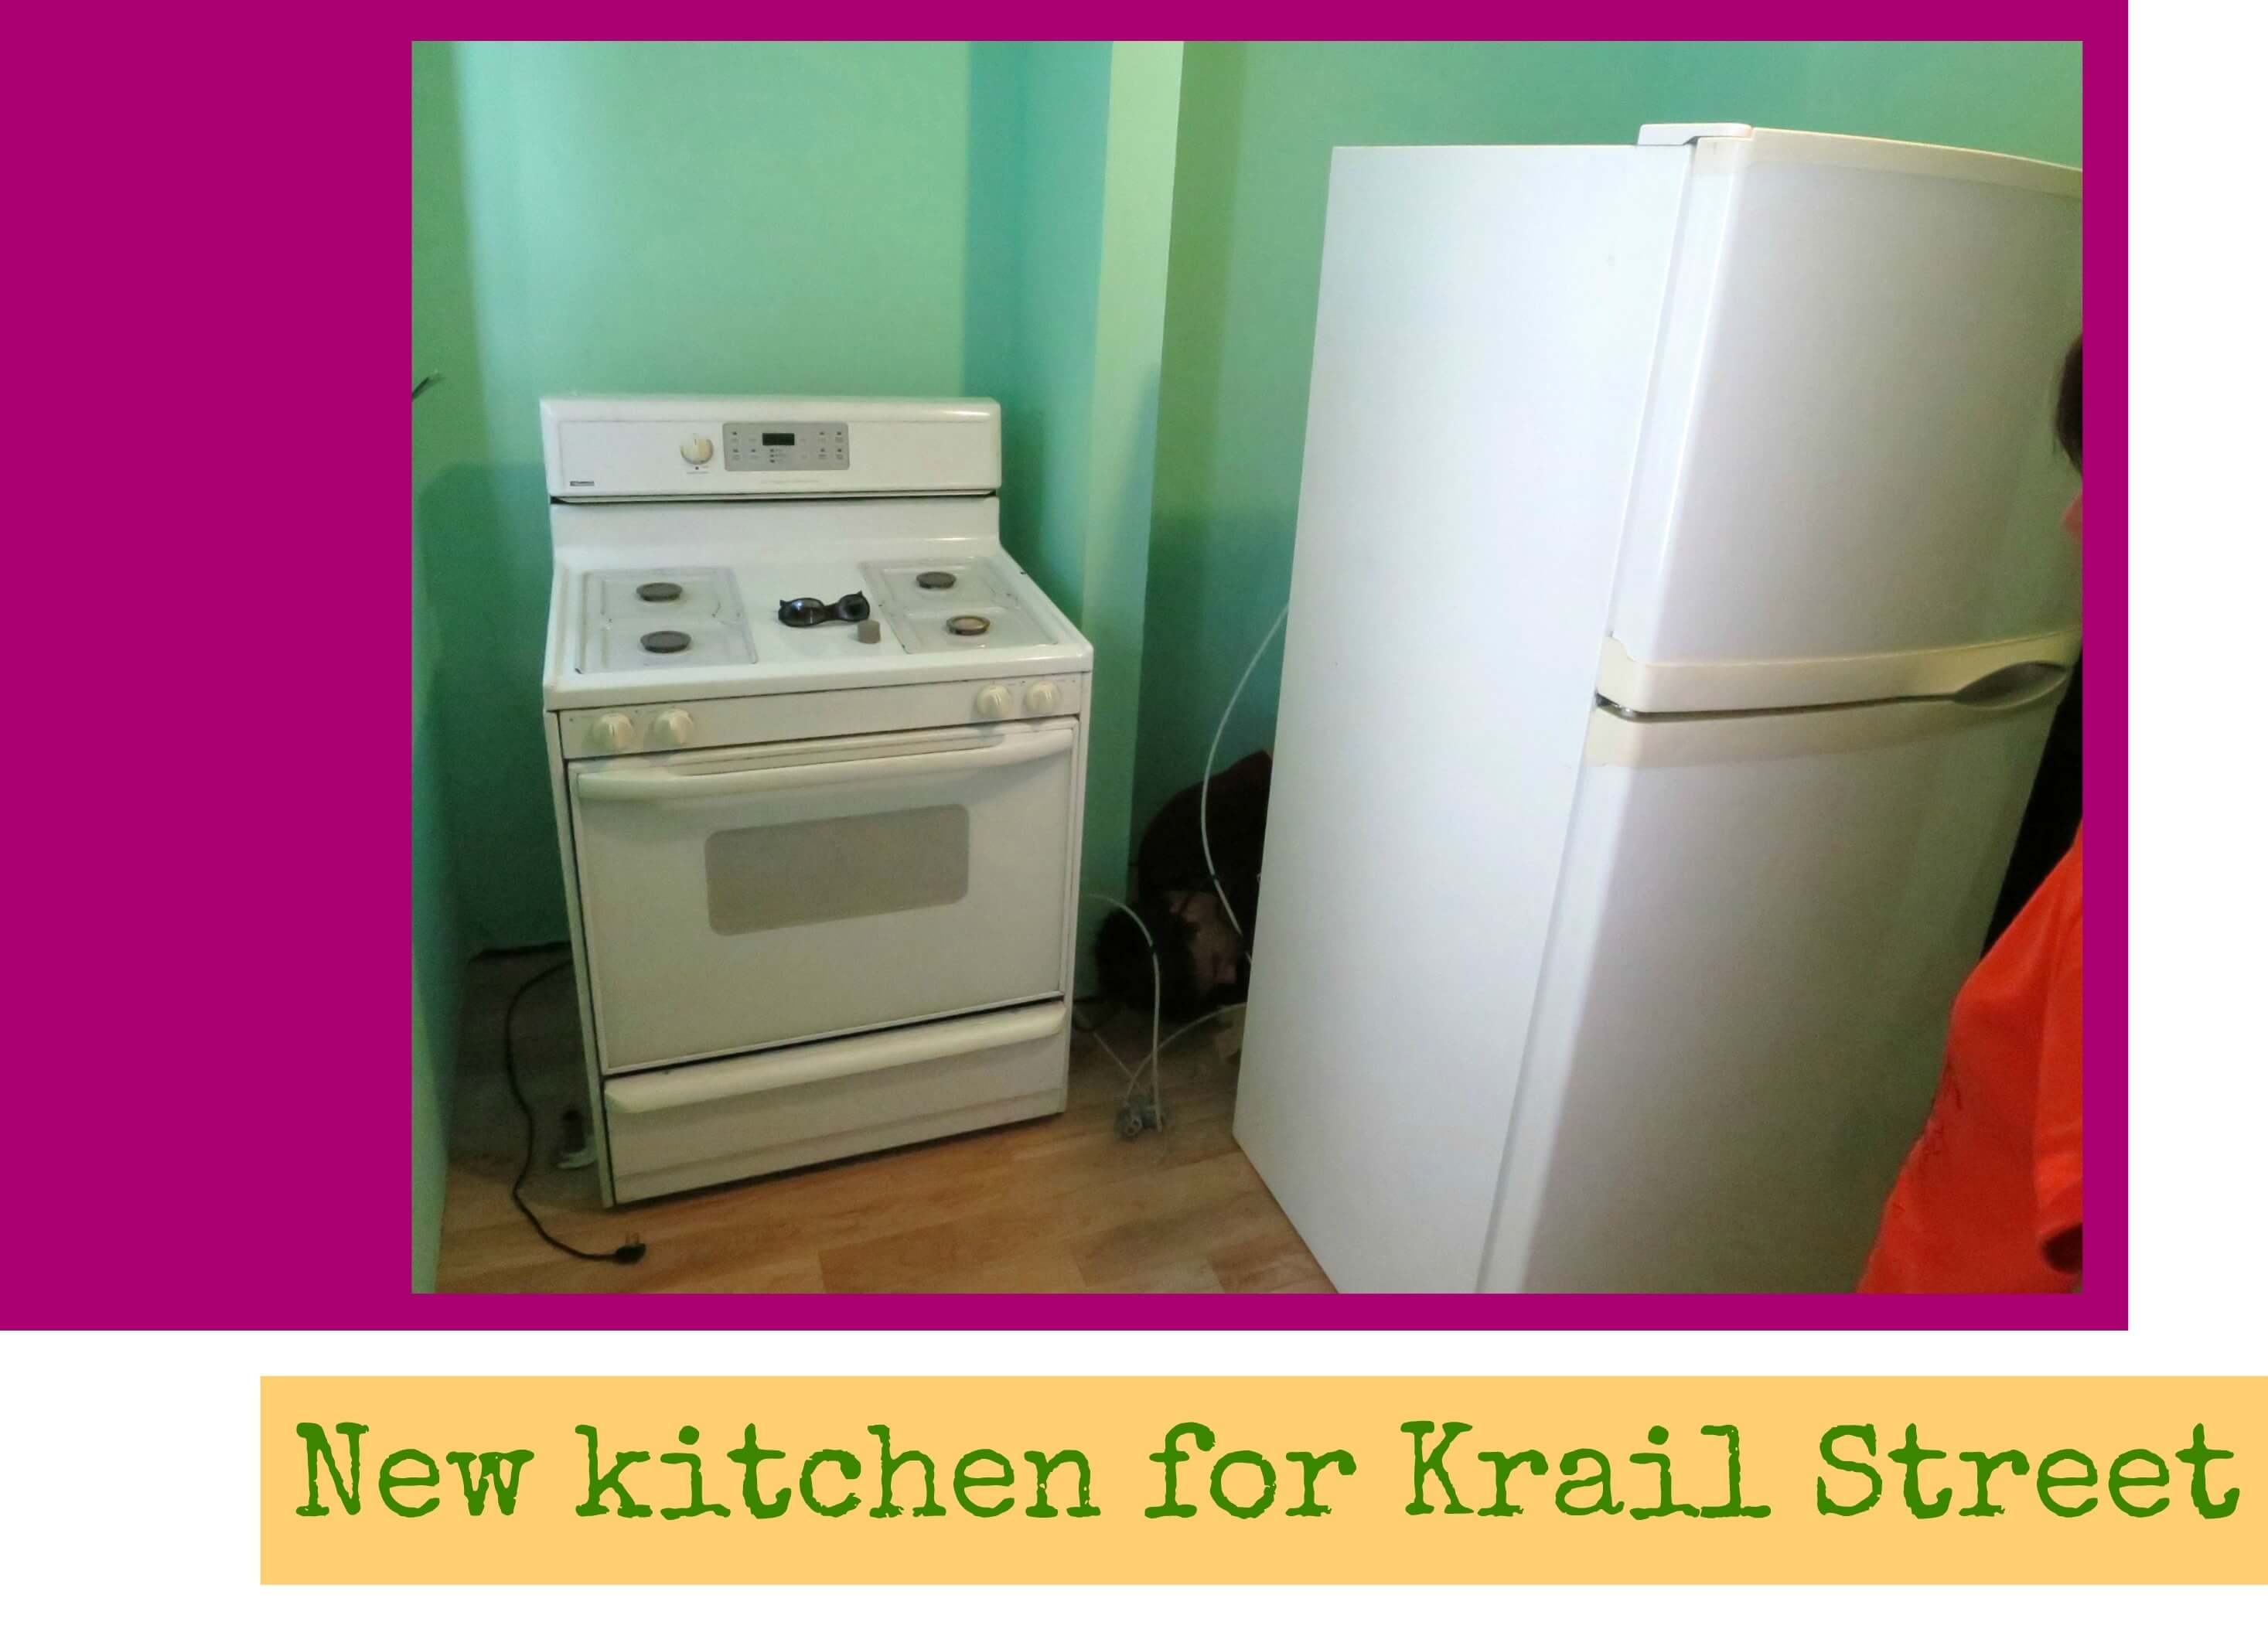 Eastfallslocal new kitchen krail street text